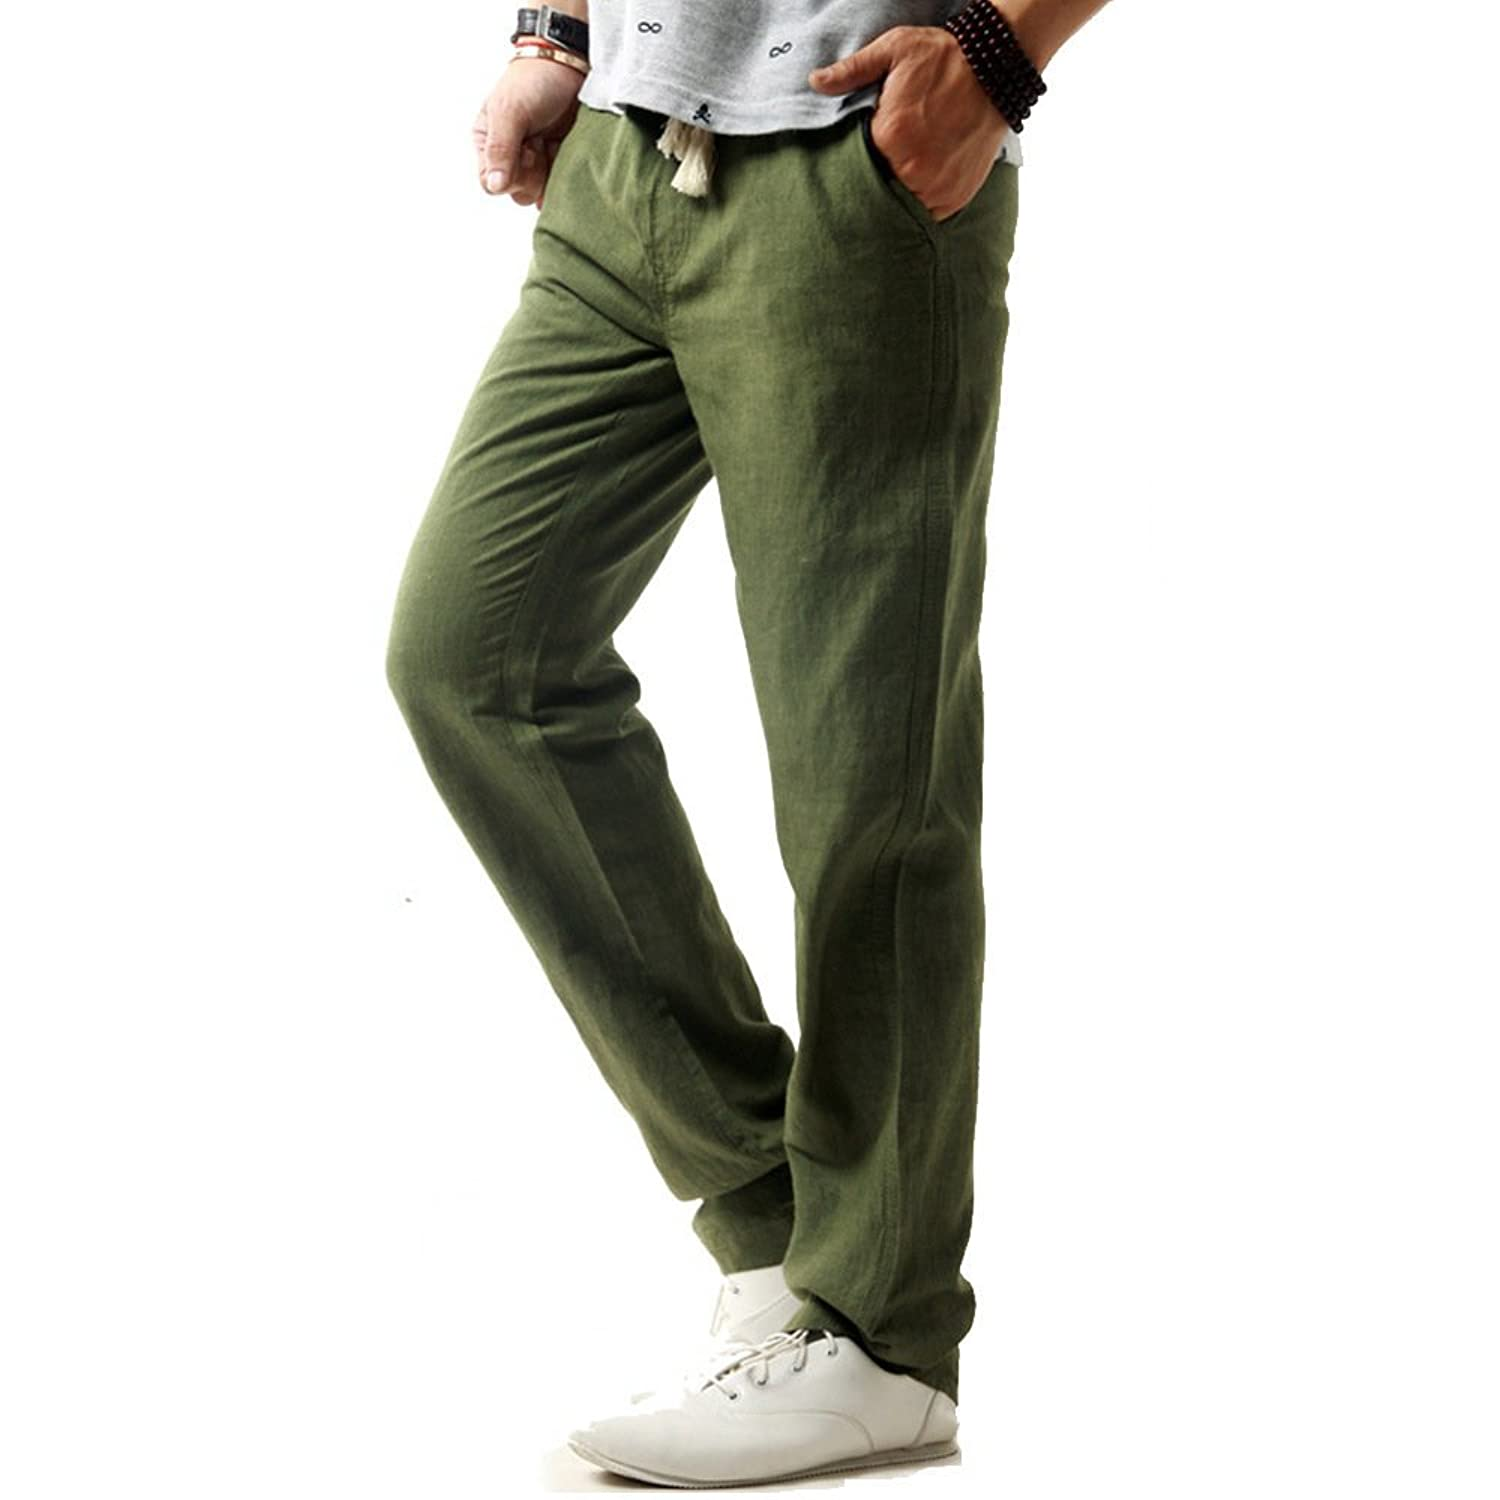 Nuosende Men's Pure Color Linen Casual Summer Pant Green